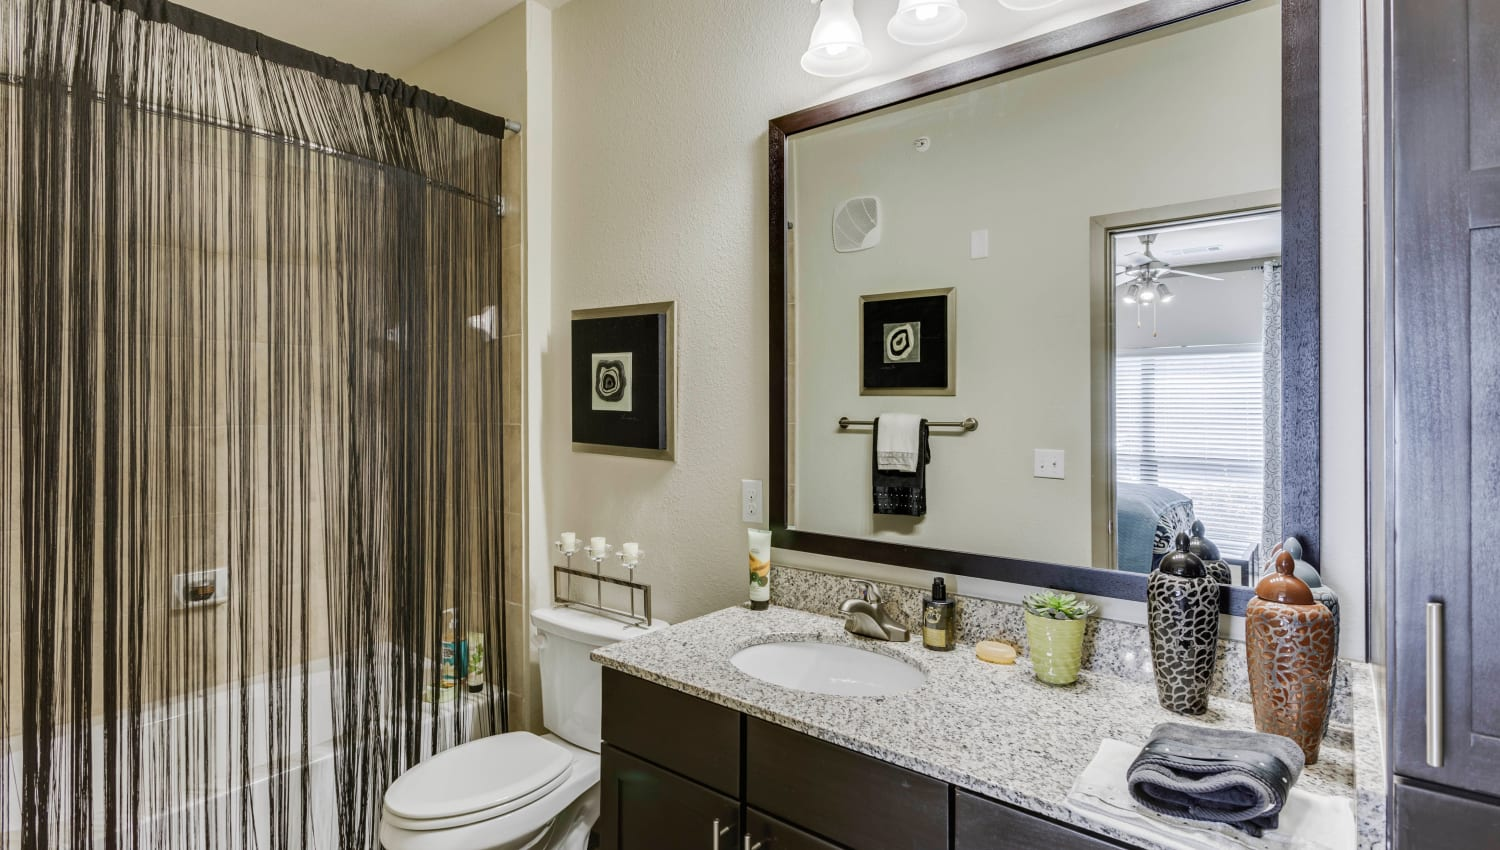 Granite countertop in a model home's bathroom at Tacara at Westover Hills in San Antonio, Texas